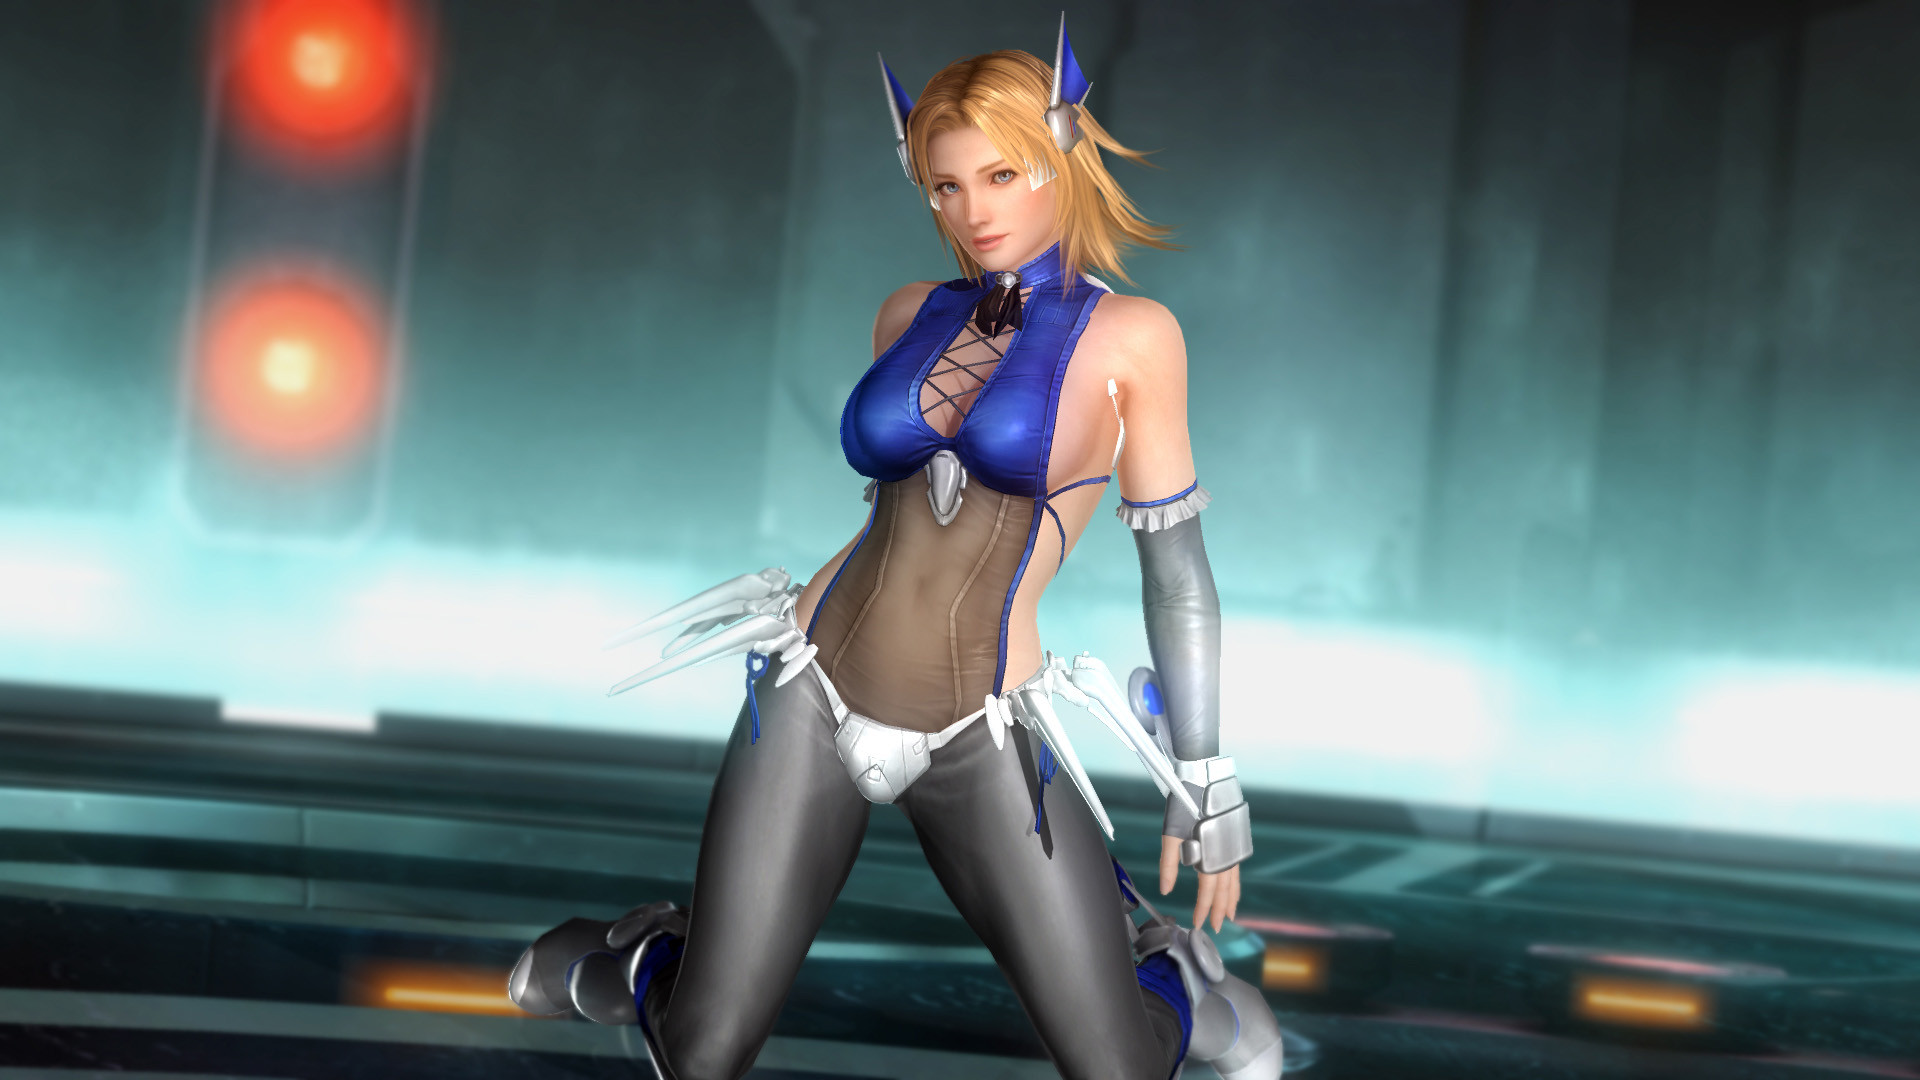 Dead Or Alive 5 HD wallpapers #6